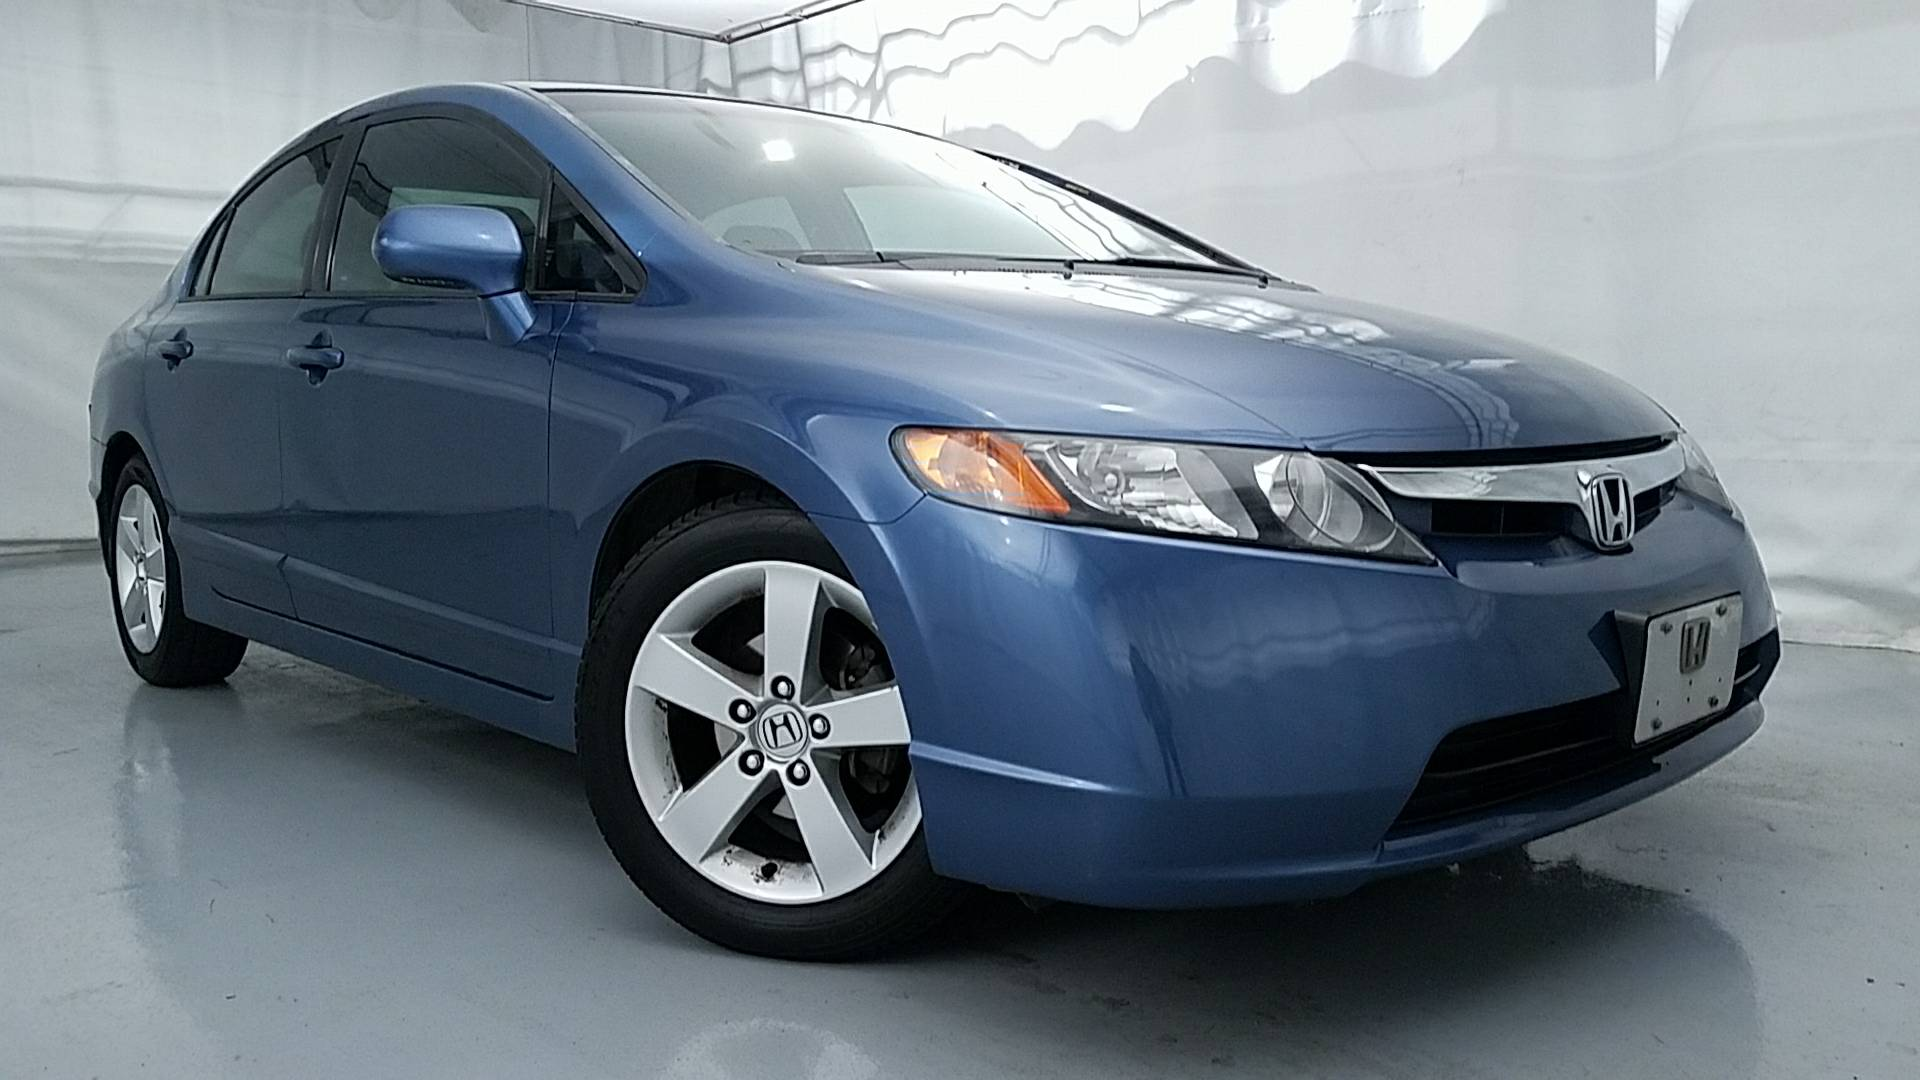 amazing basile sale civic used st honda condition at for